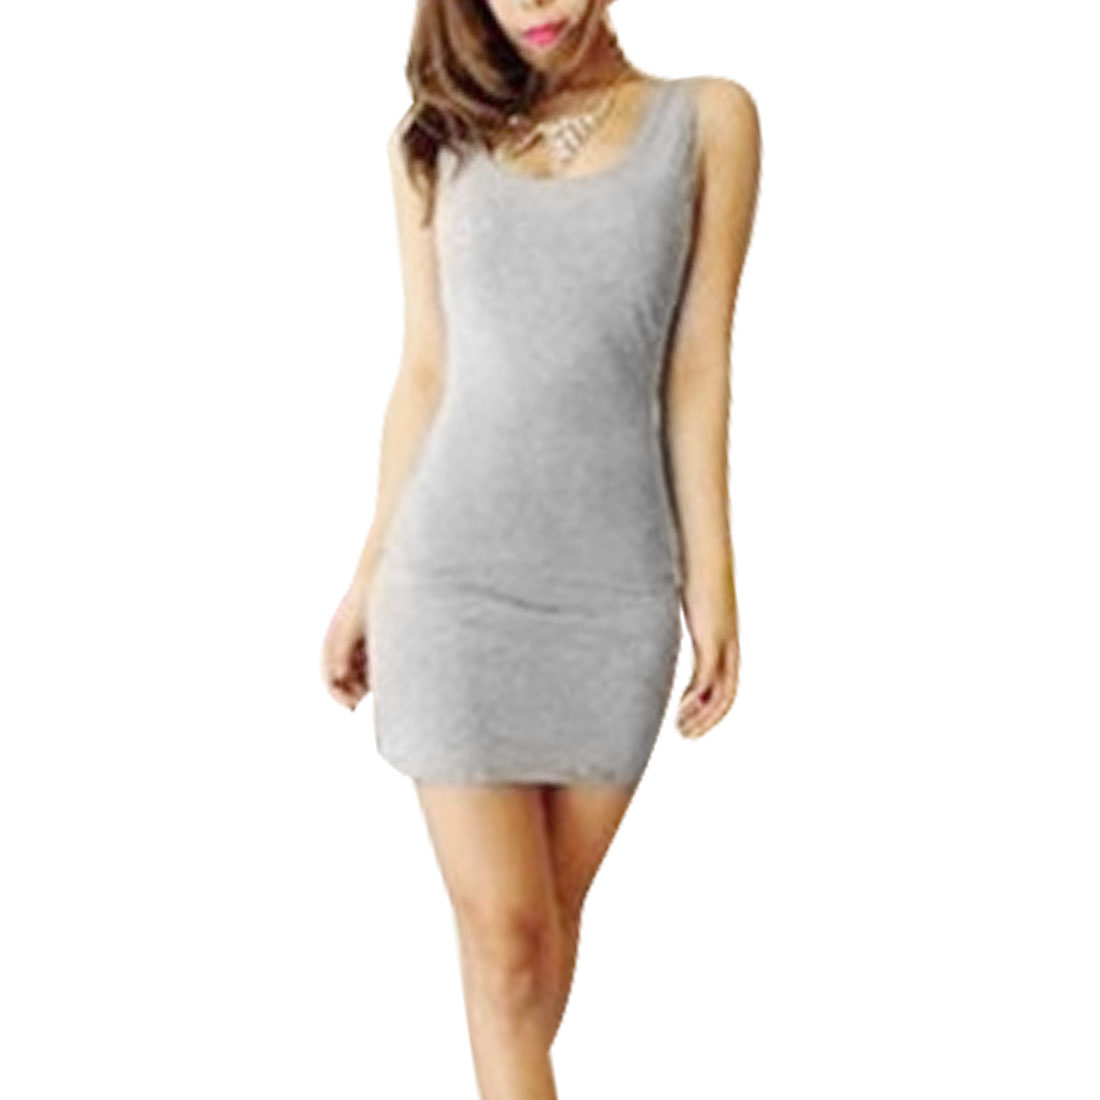 Woman Summer Fashional Tightfitting Elastic Mini Dress Gray XS